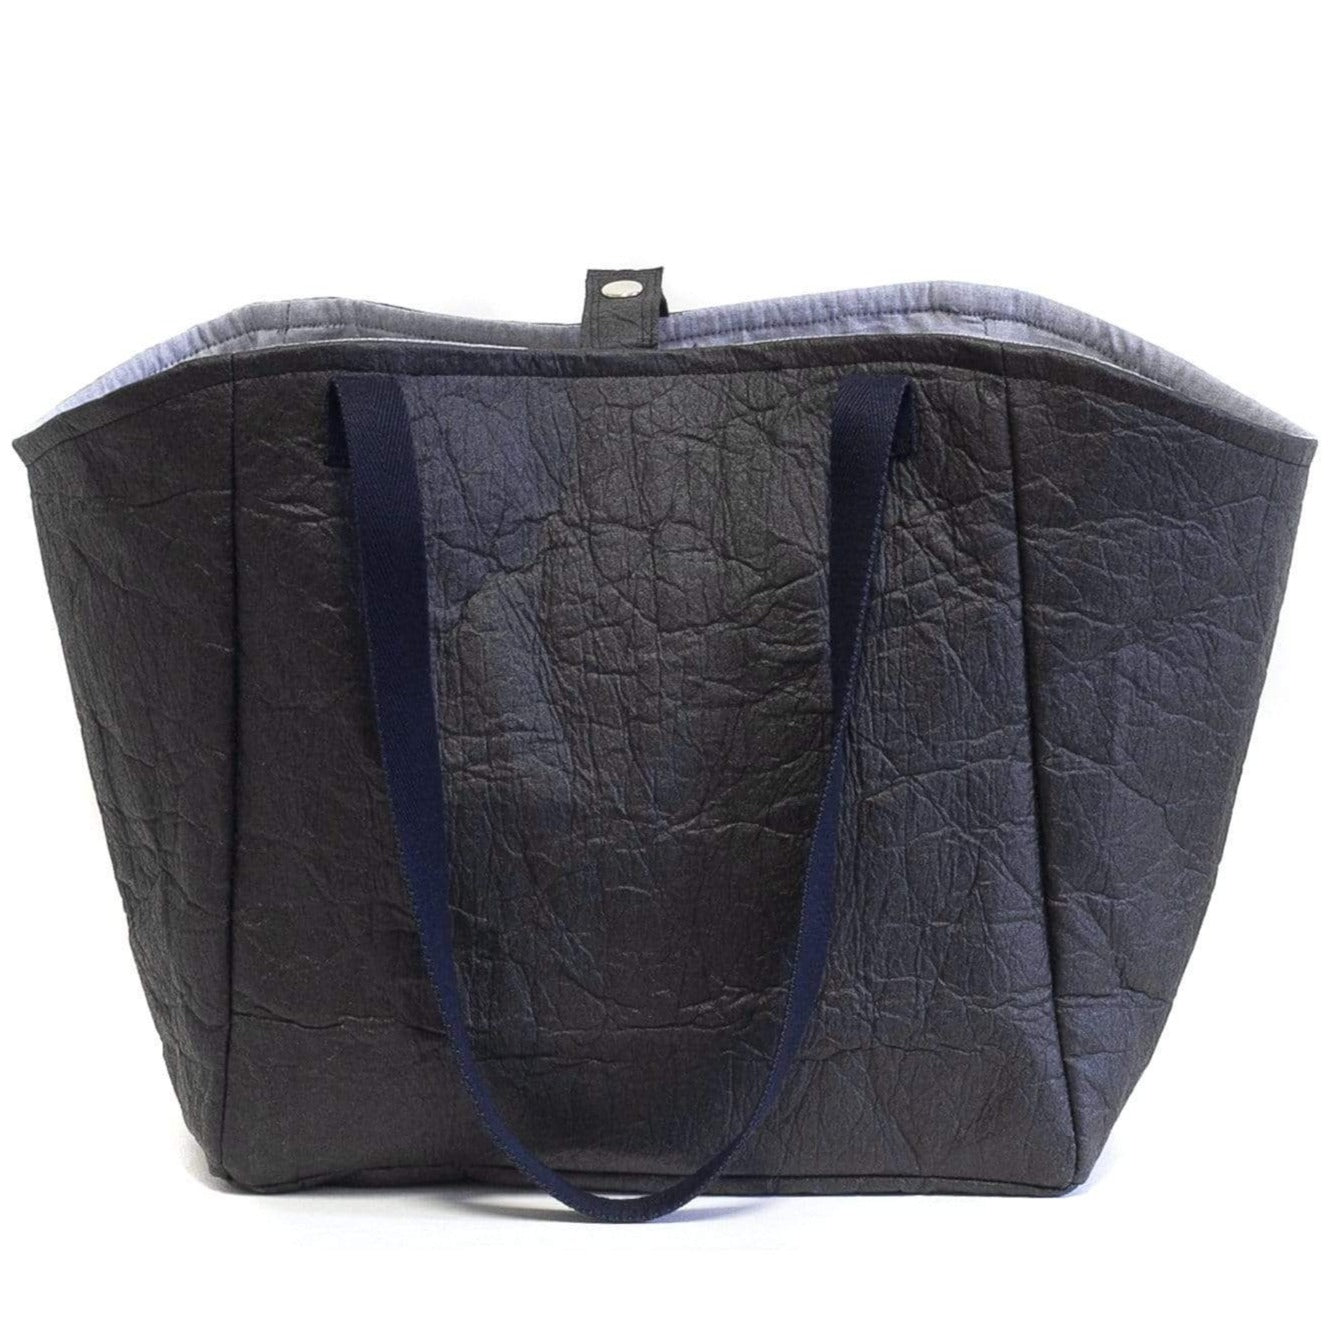 WWoW Sacs Sac Cabas Piñatex Noir Leymah sustainable fashion ethical fashion